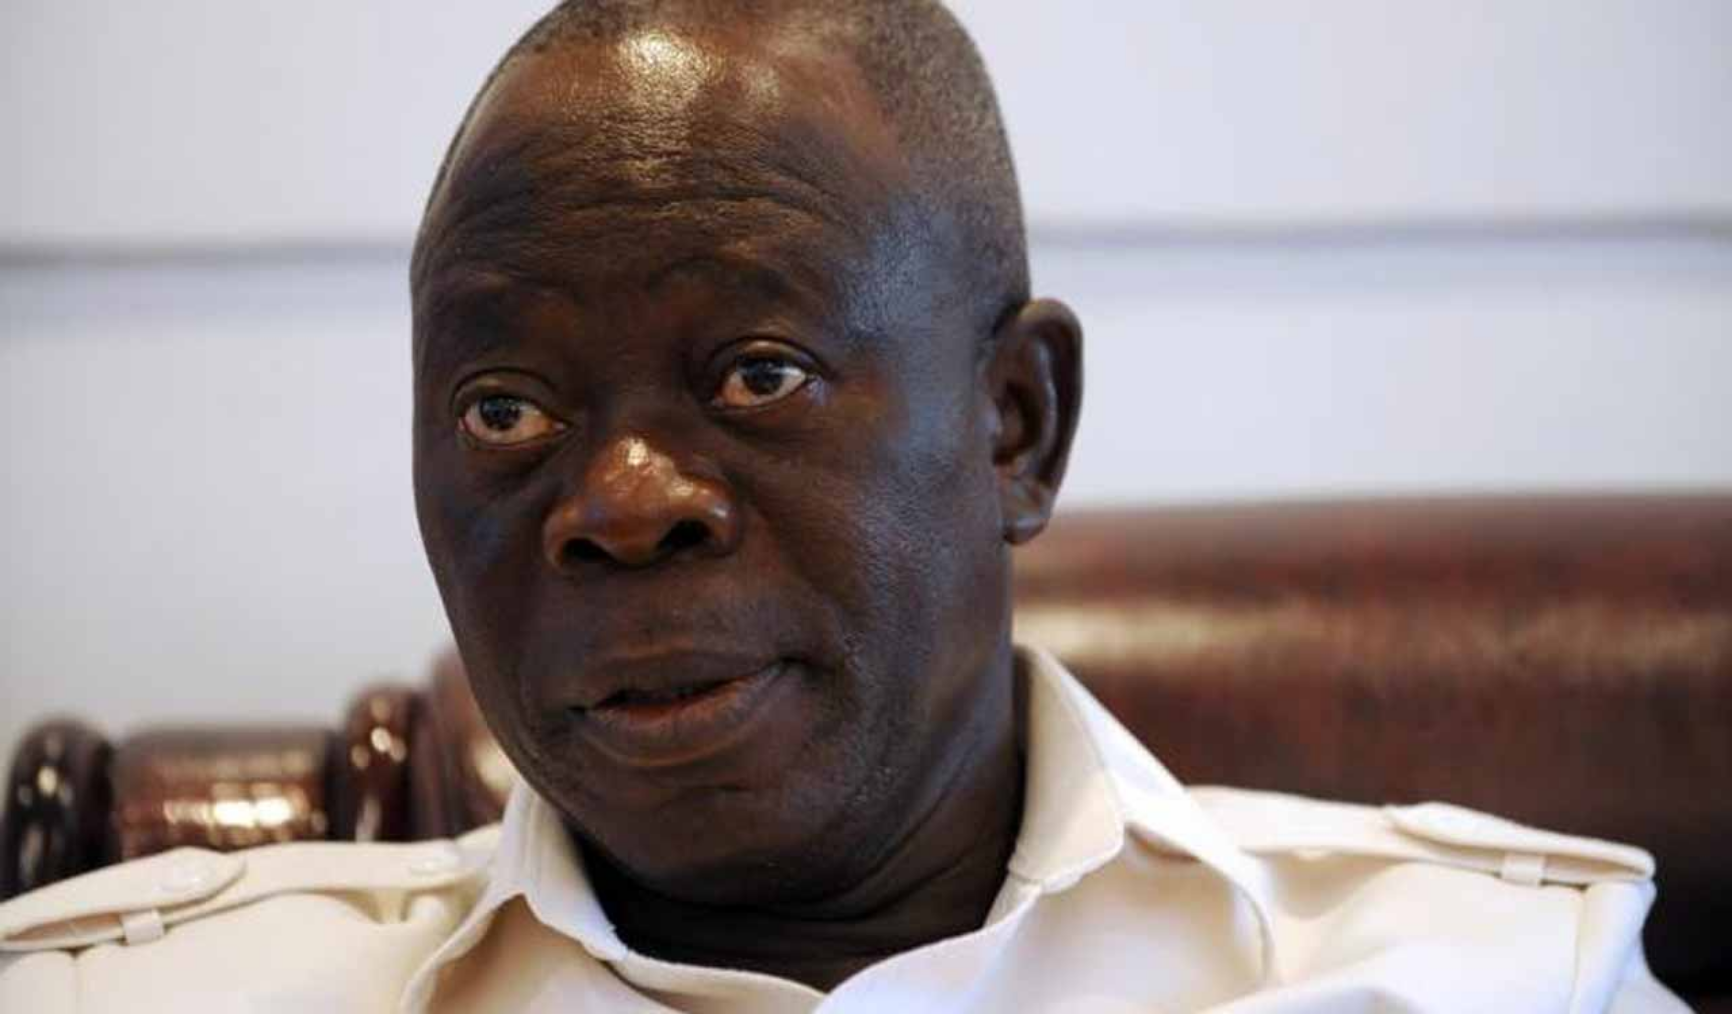 FW: Adams Oshiomhole denies getting quizzed by DSS